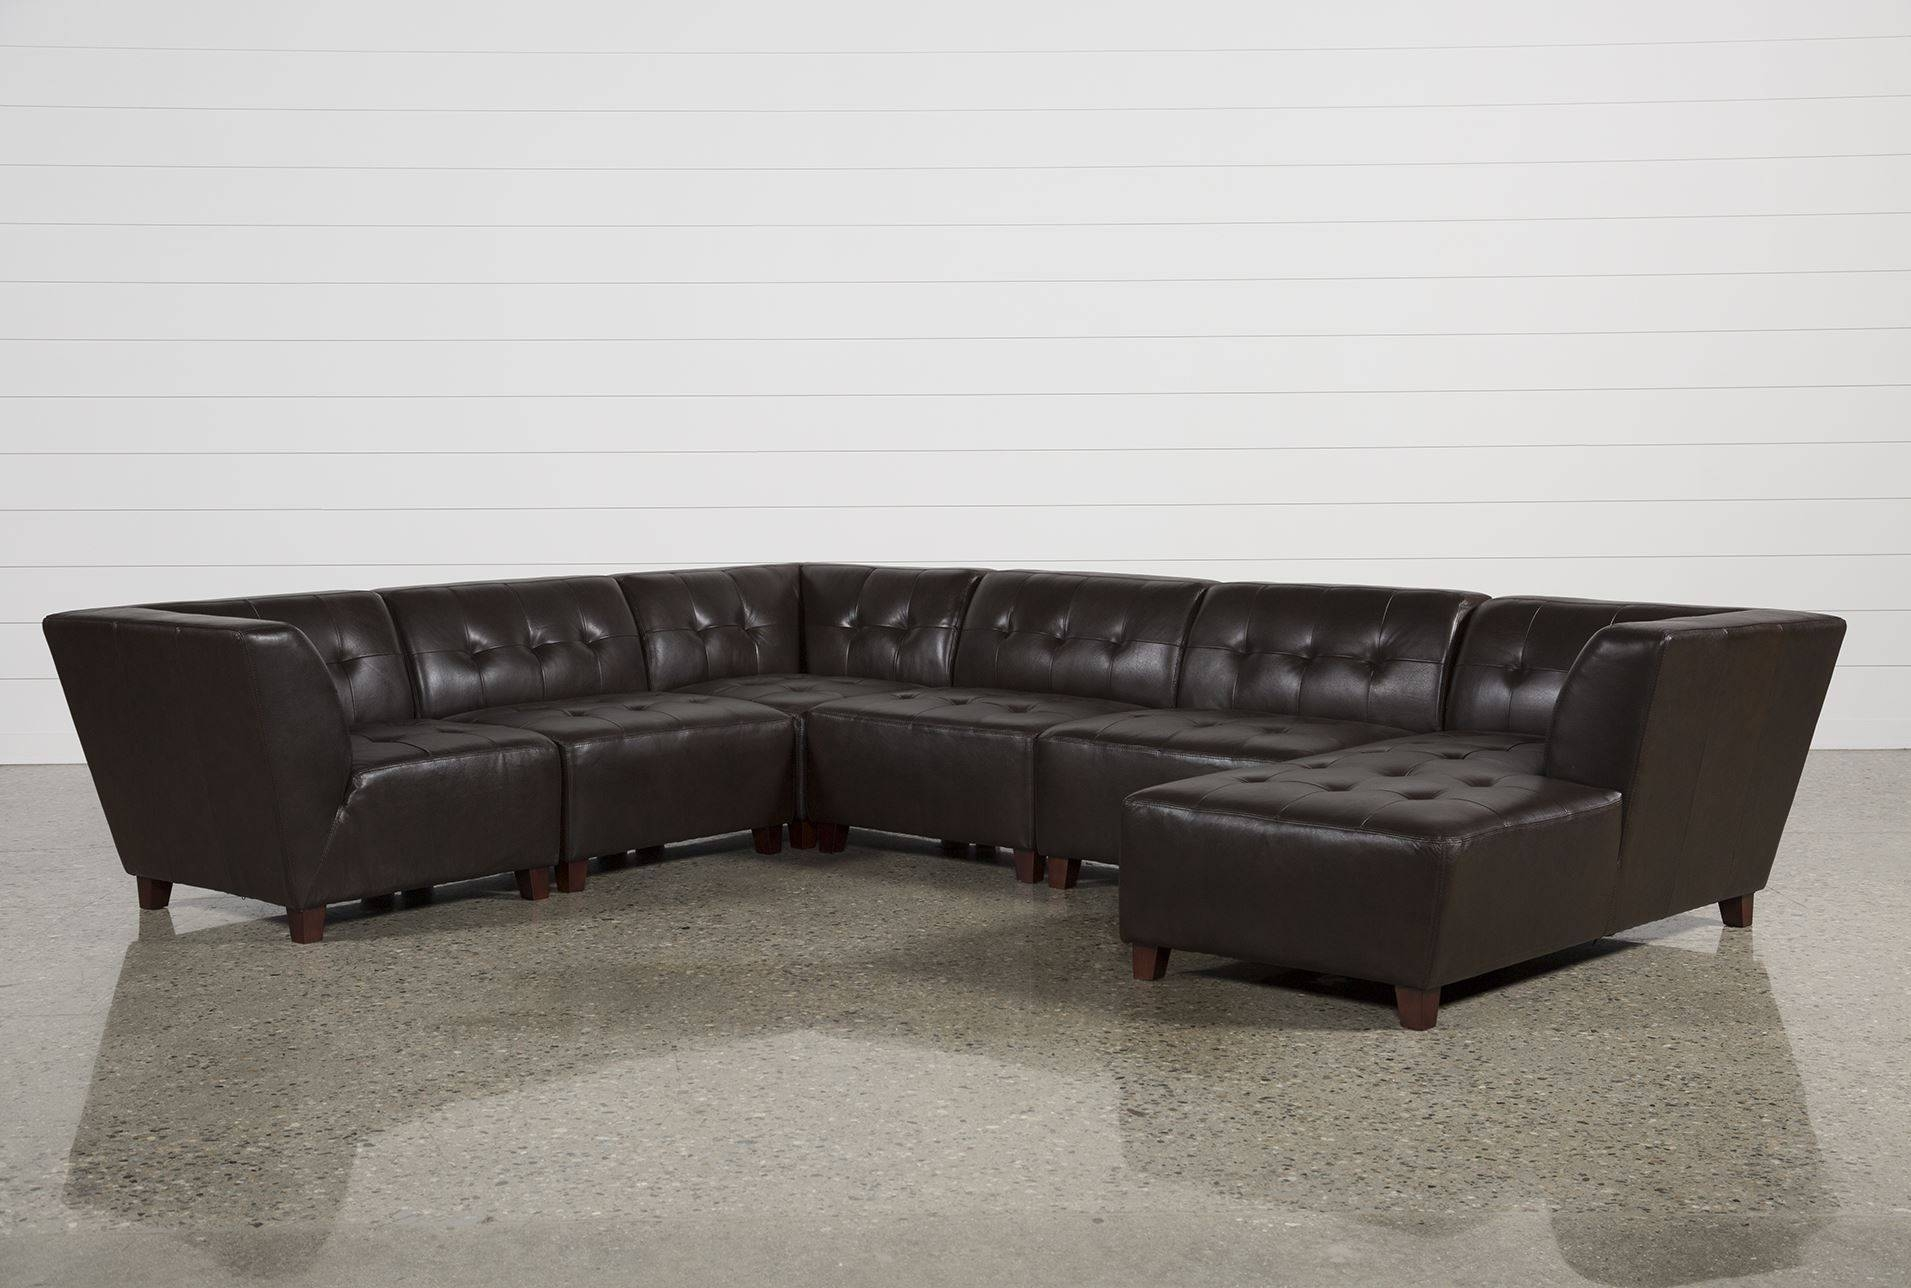 Stunning 6 Piece Leather Sectional Sofa 68 For Your Sectional intended for Leather Sectional Sofas Toronto (Image 16 of 25)